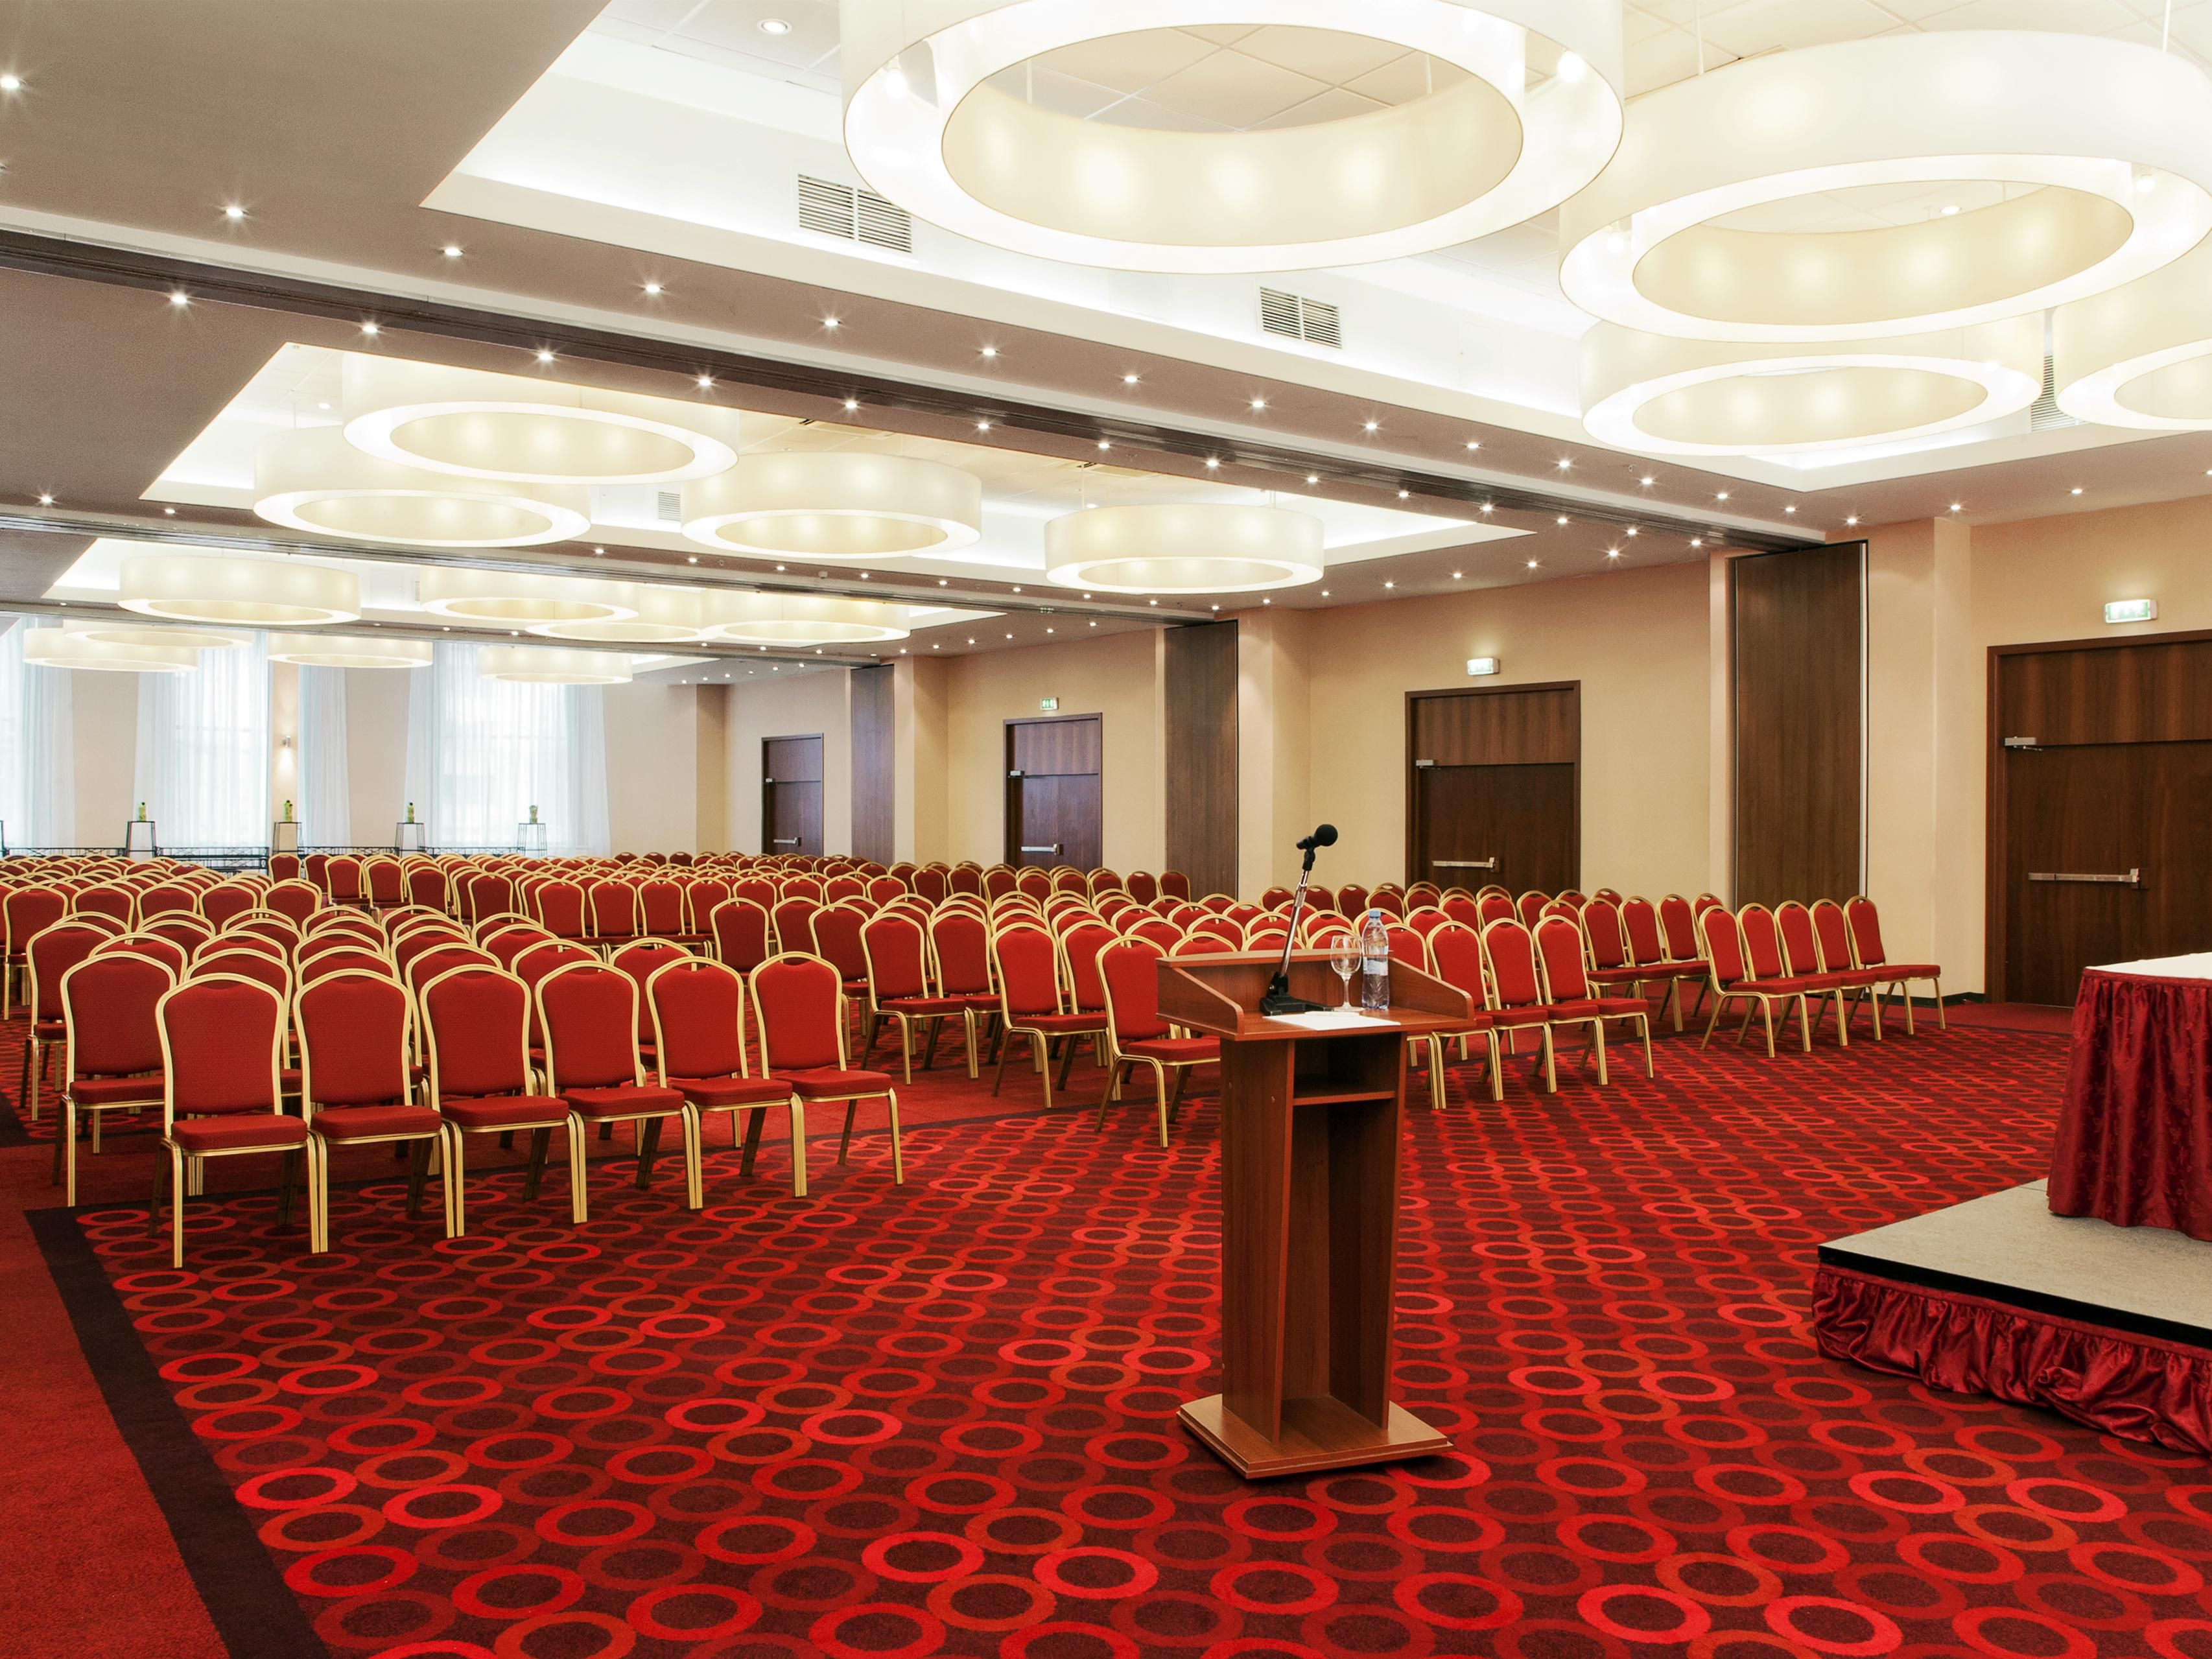 Best venue for your event - Grand Ball Room